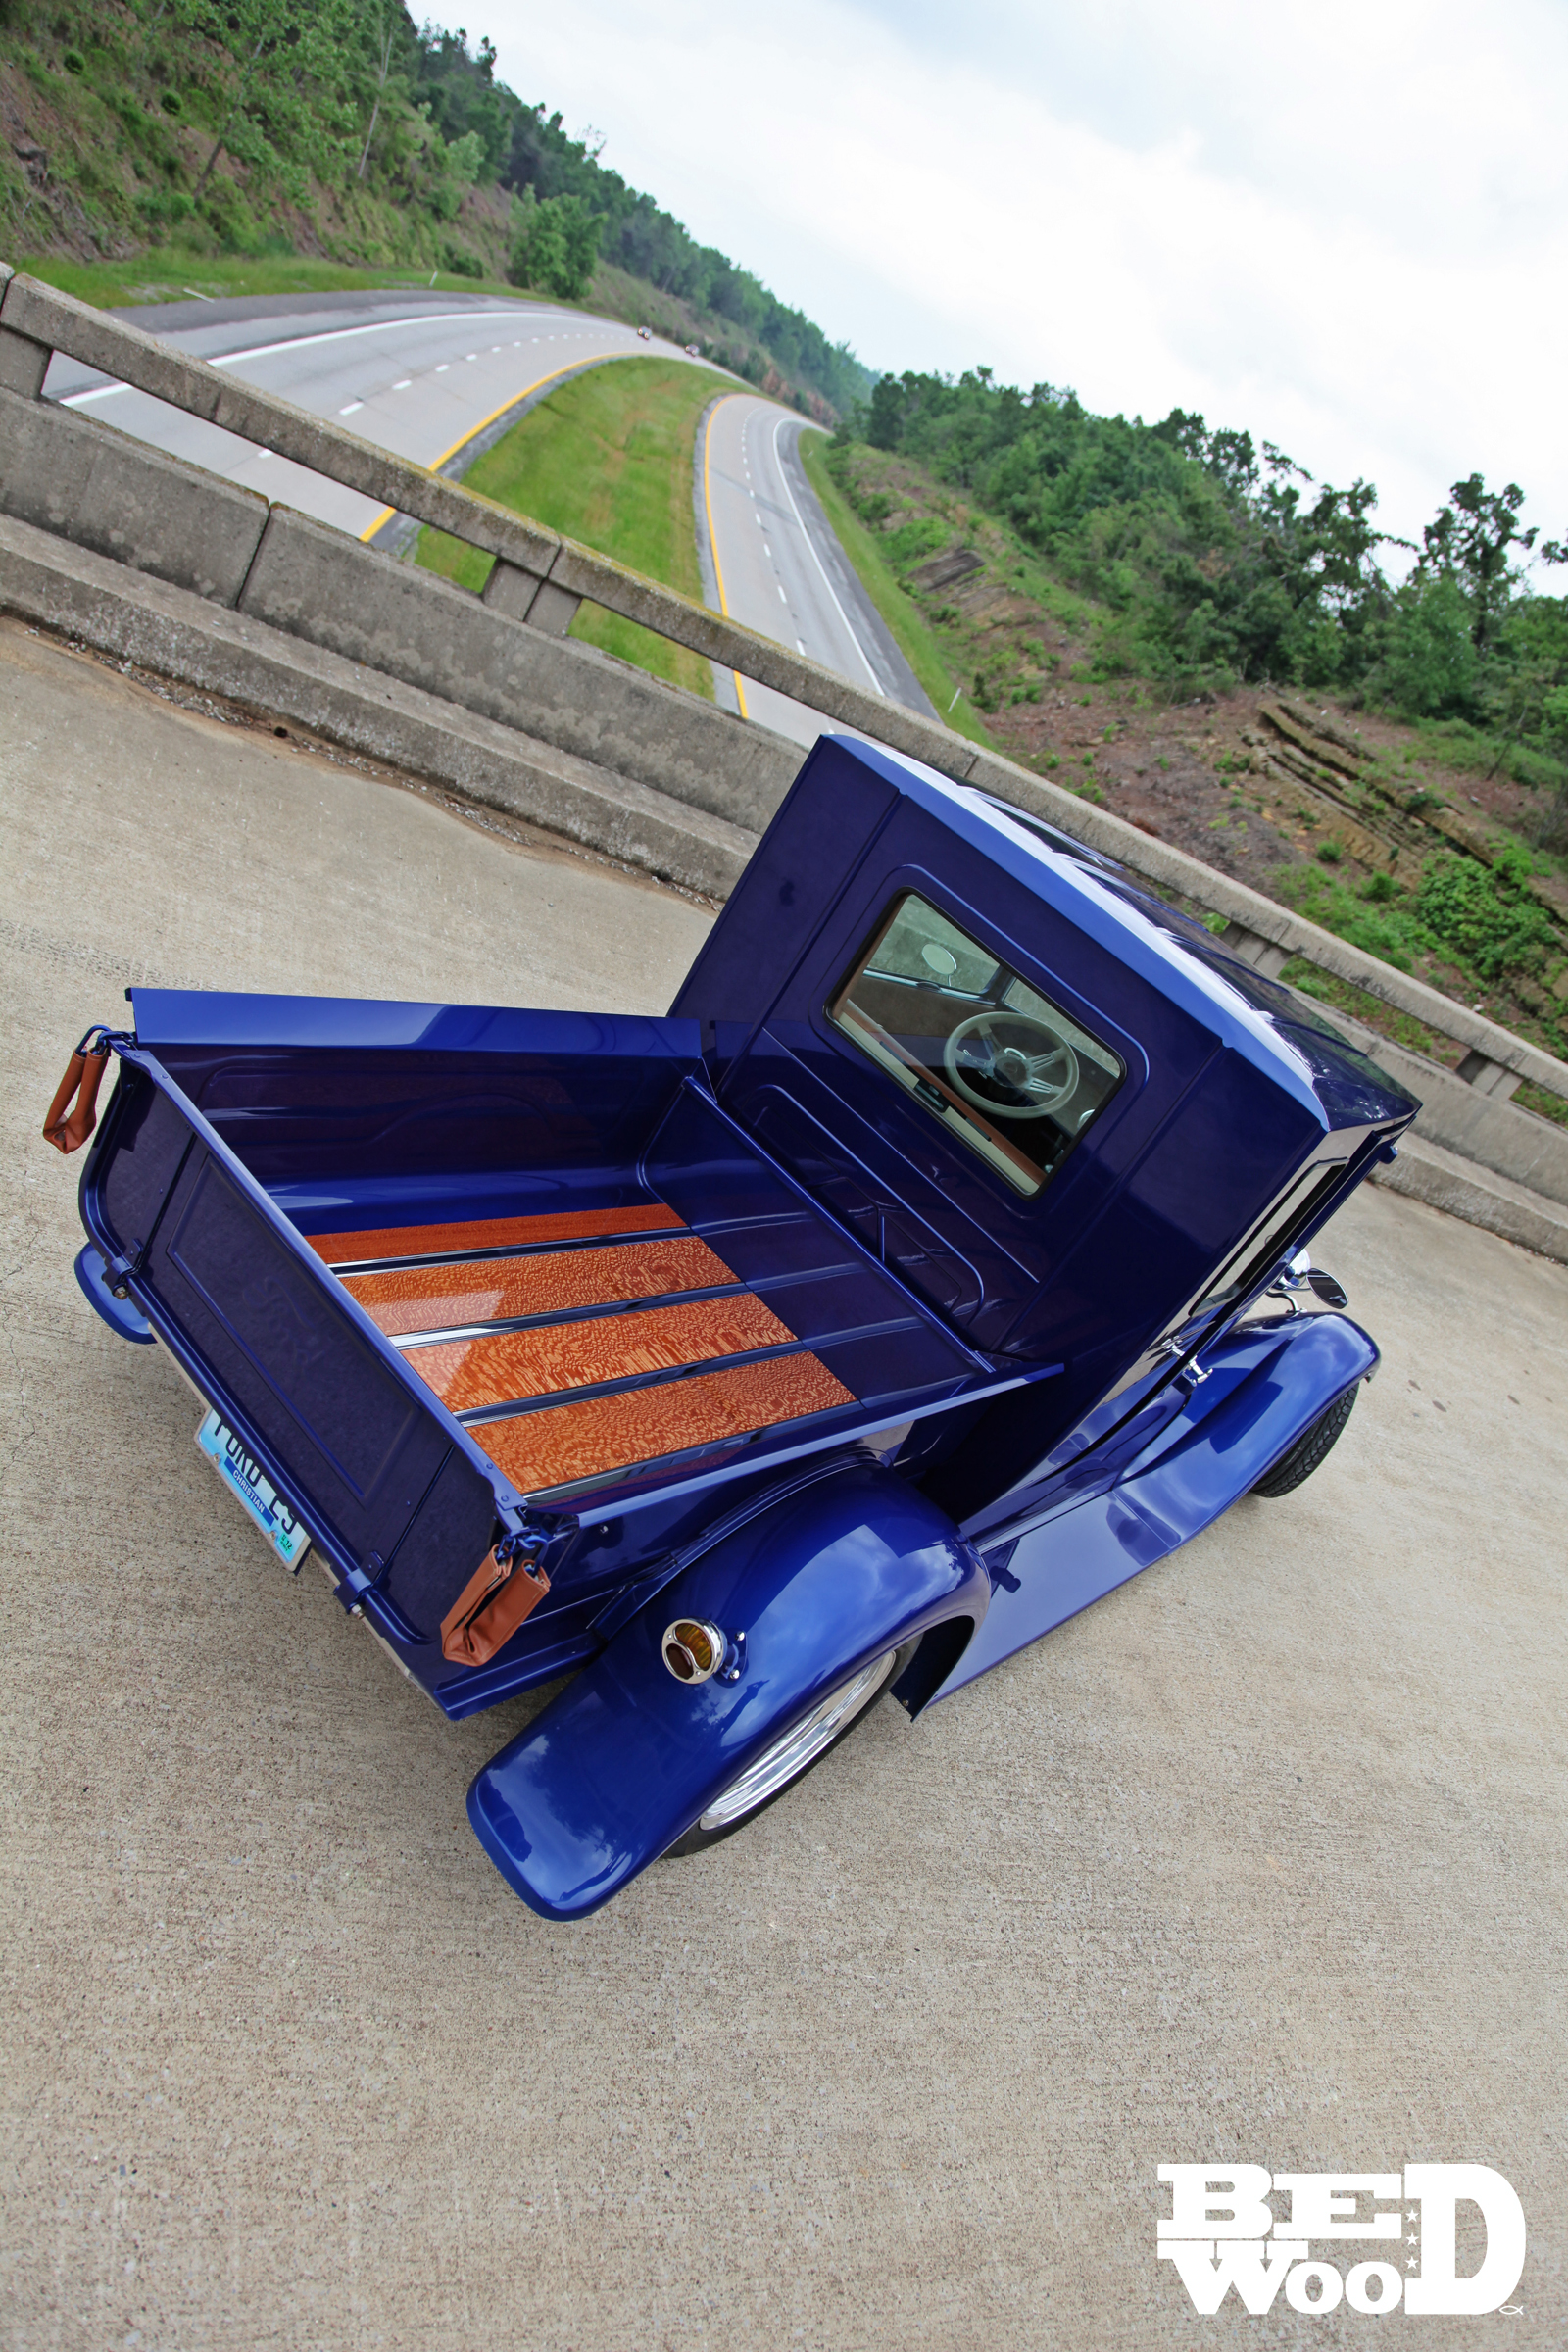 Pickup Truck Bed >> Bed Wood and Parts Retains Marketing Specialists bonspeedMedia